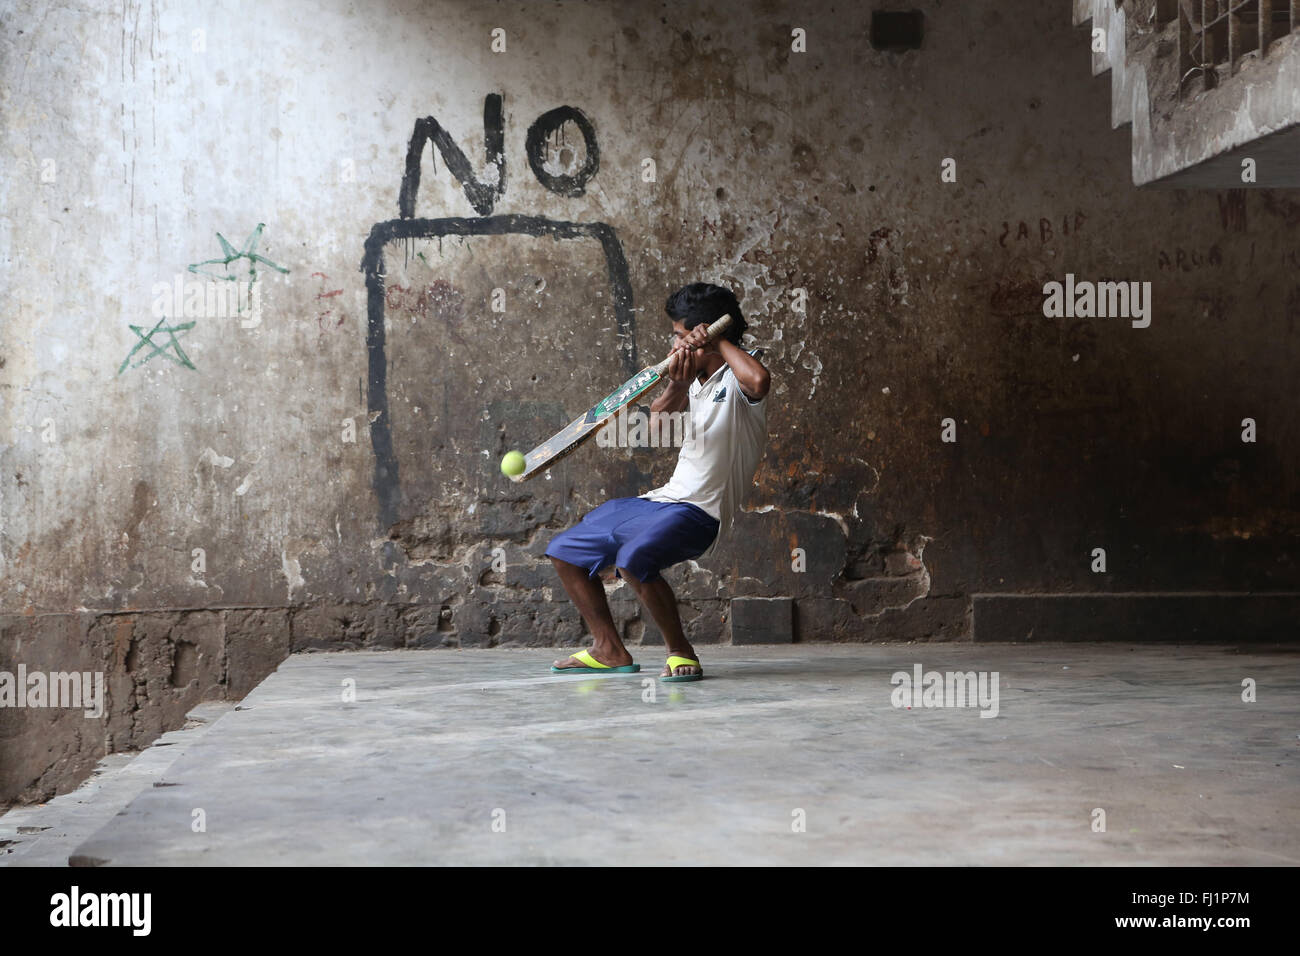 Young man playing cricket near New Market , Kolkata, with a 'No' writing on the wall behind him. He misses - Stock Image